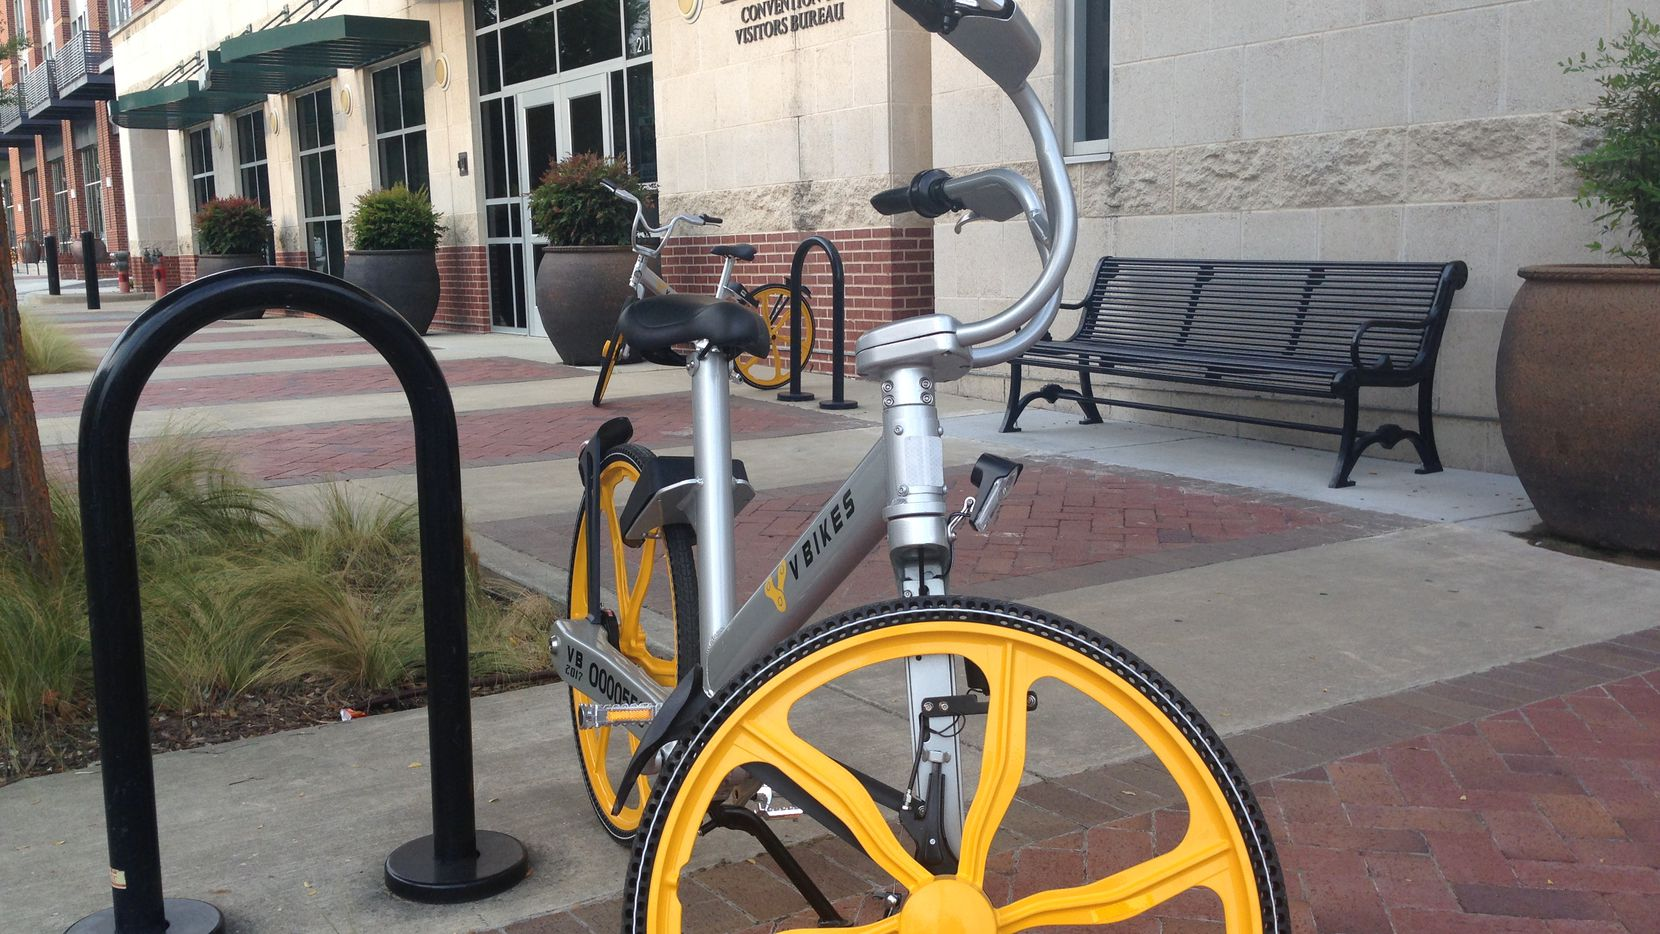 Garland is the latest city to promote bicycle sharing, using one its own companies, VBikes, as the vendor. Forty-five VBikes were deployed in downtown Garland this month.(Ray Leszcynski/Staff)